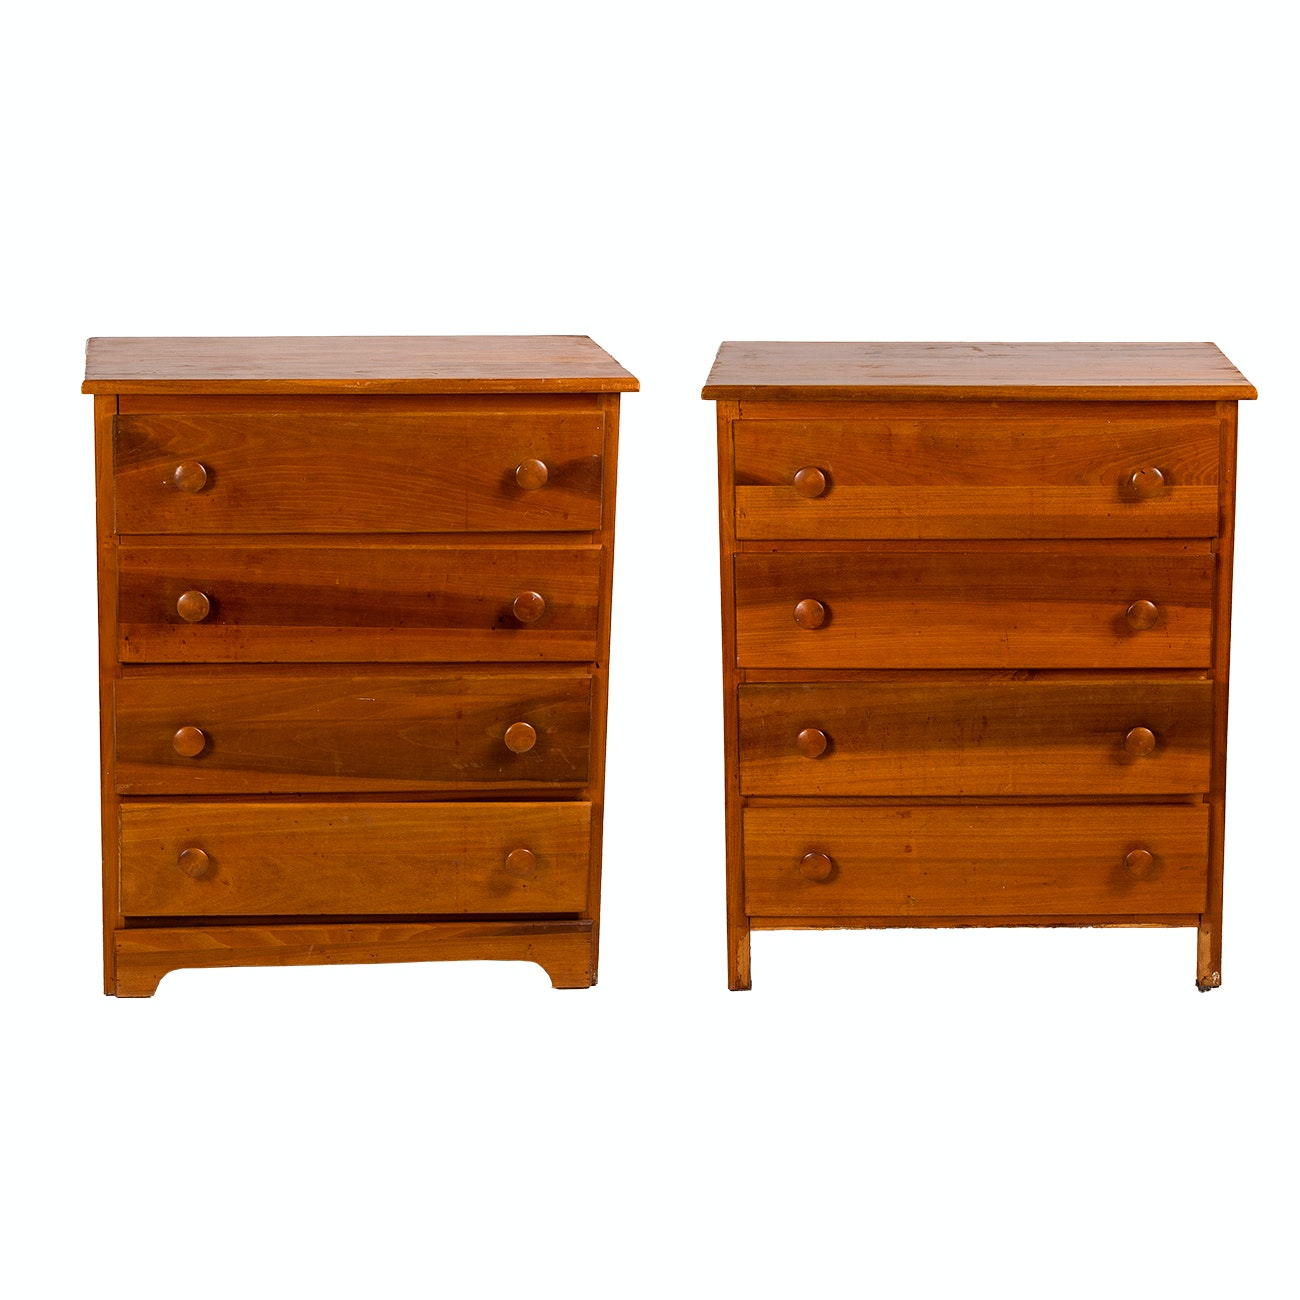 Pair of Shaker Style Wooden Dressers